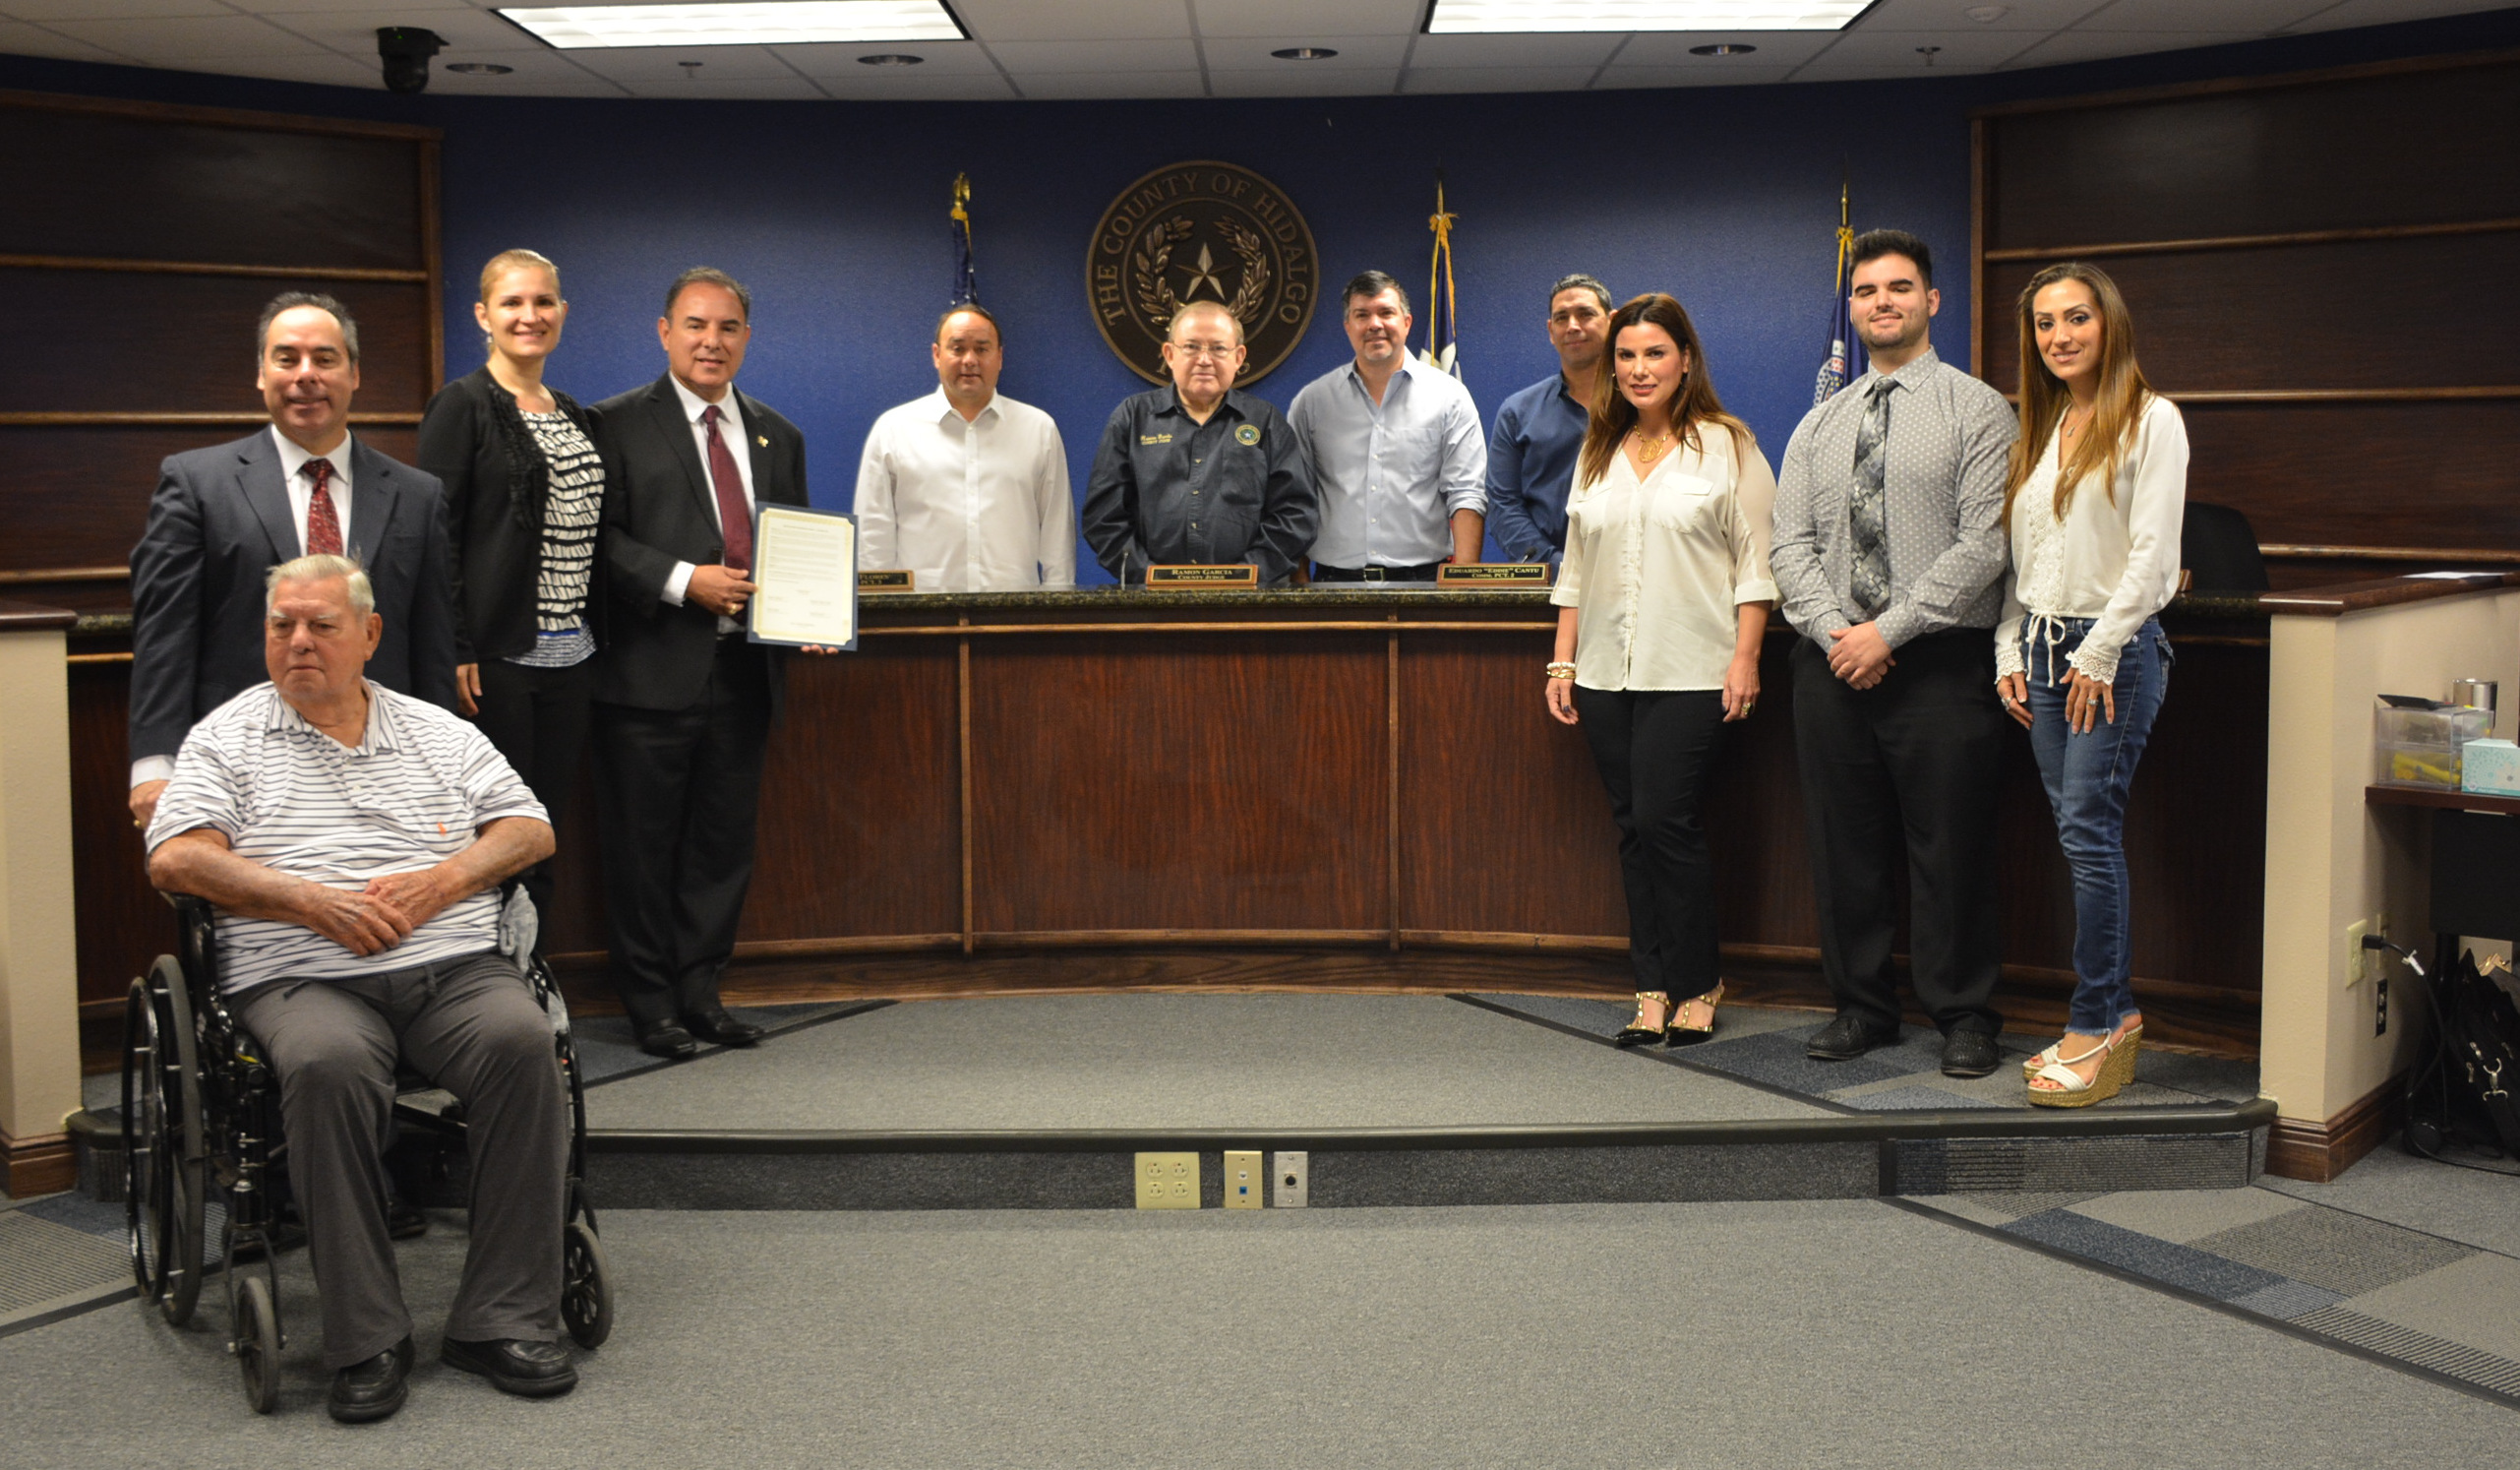 Dr. Jose L. Cazares Jr. holds up the proclamation of Dentist of the Year with Commissioners Court and his family. (courtesy)